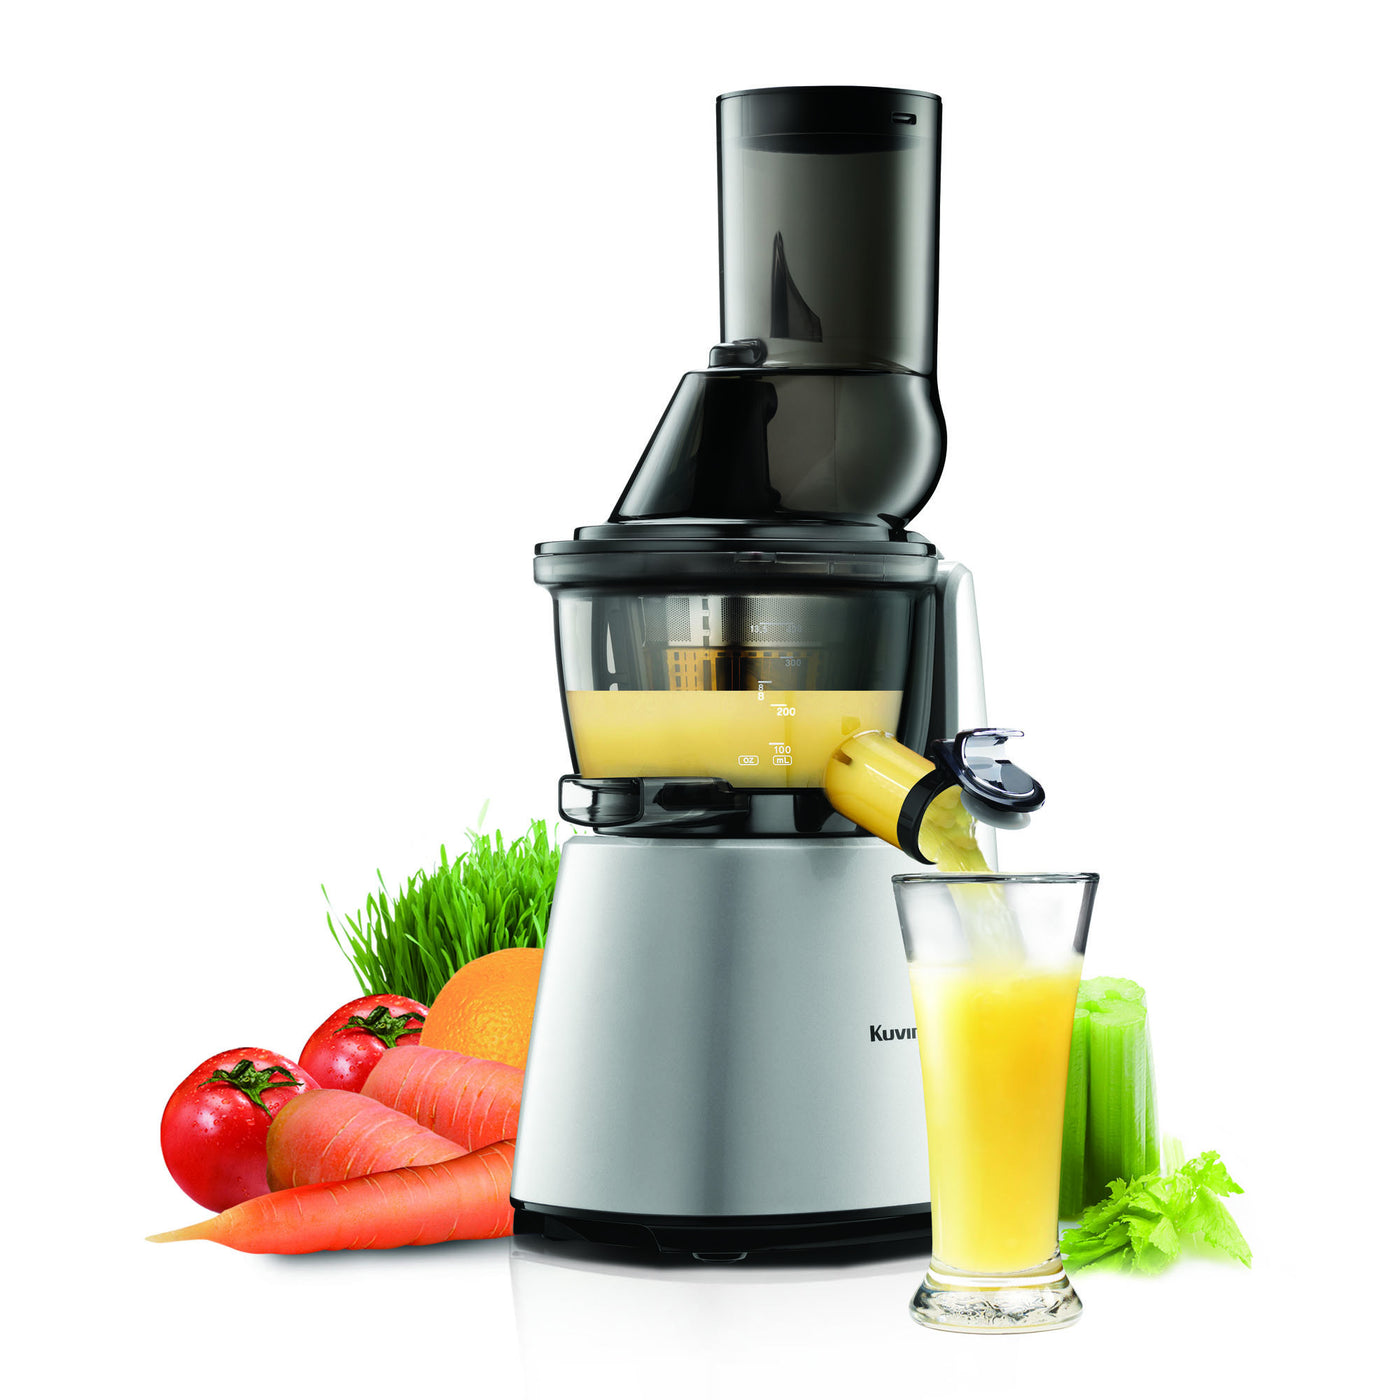 Kuvings C7000pr Whole Slow Juicer : Kuvings Elite Whole Slow Juicer C7000 Juicerville